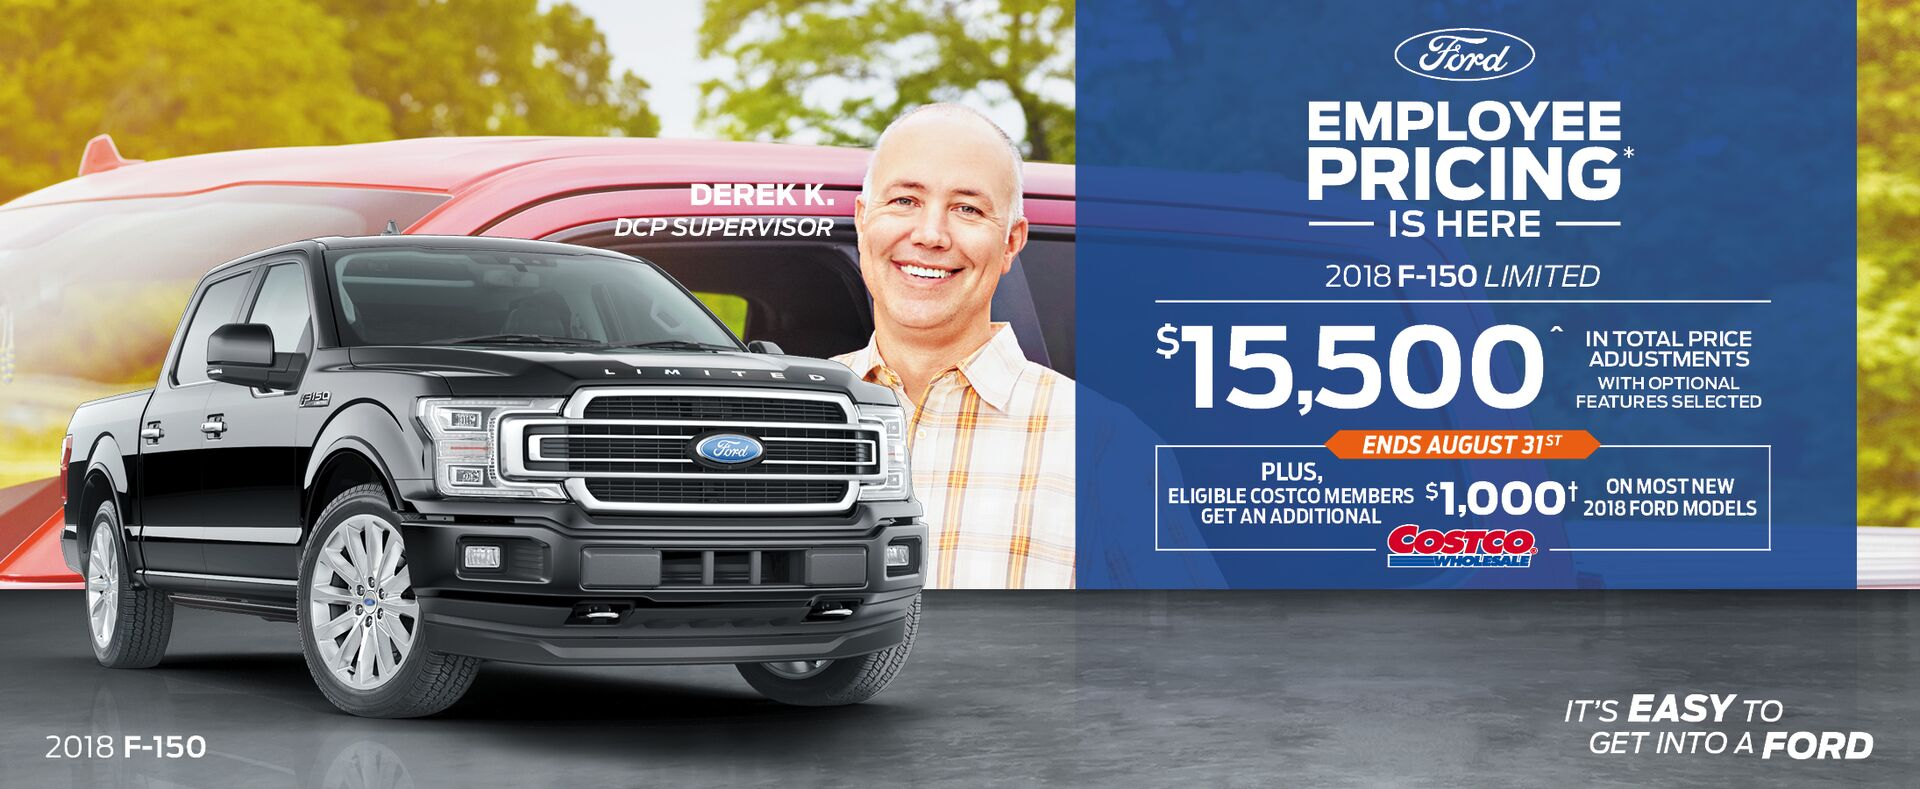 F-150 Offers